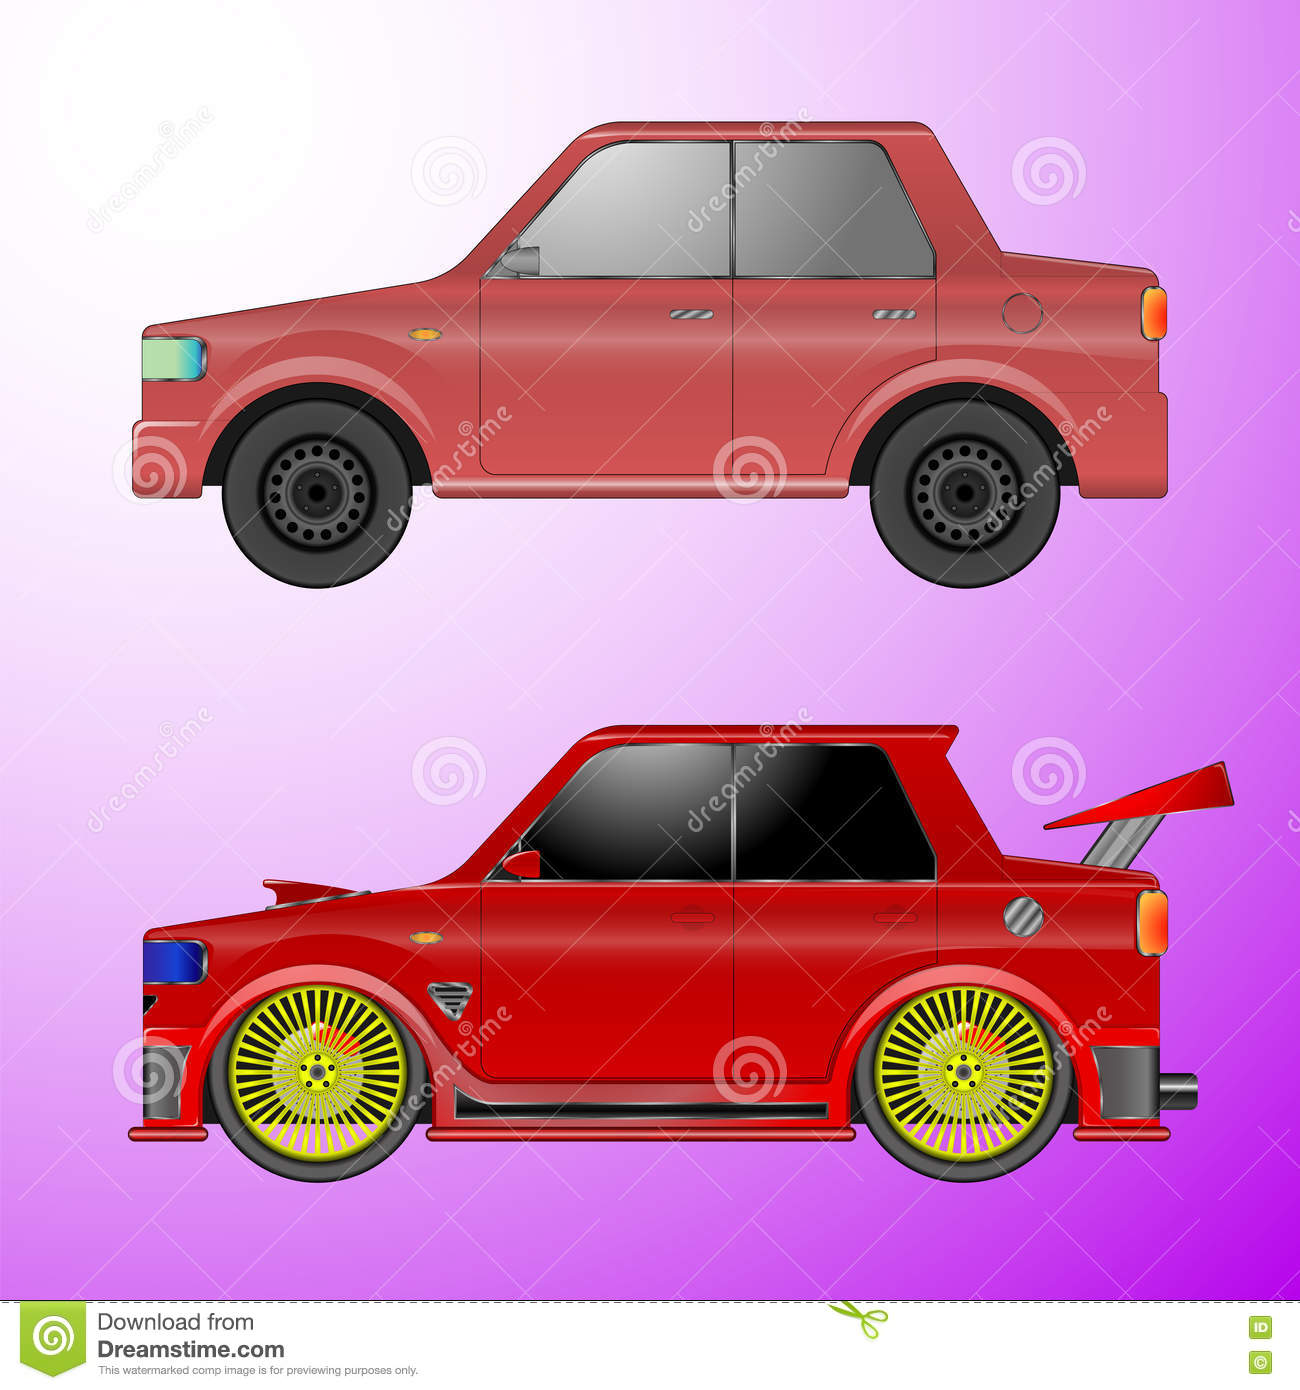 Technical characteristics of cars: a selection of sites